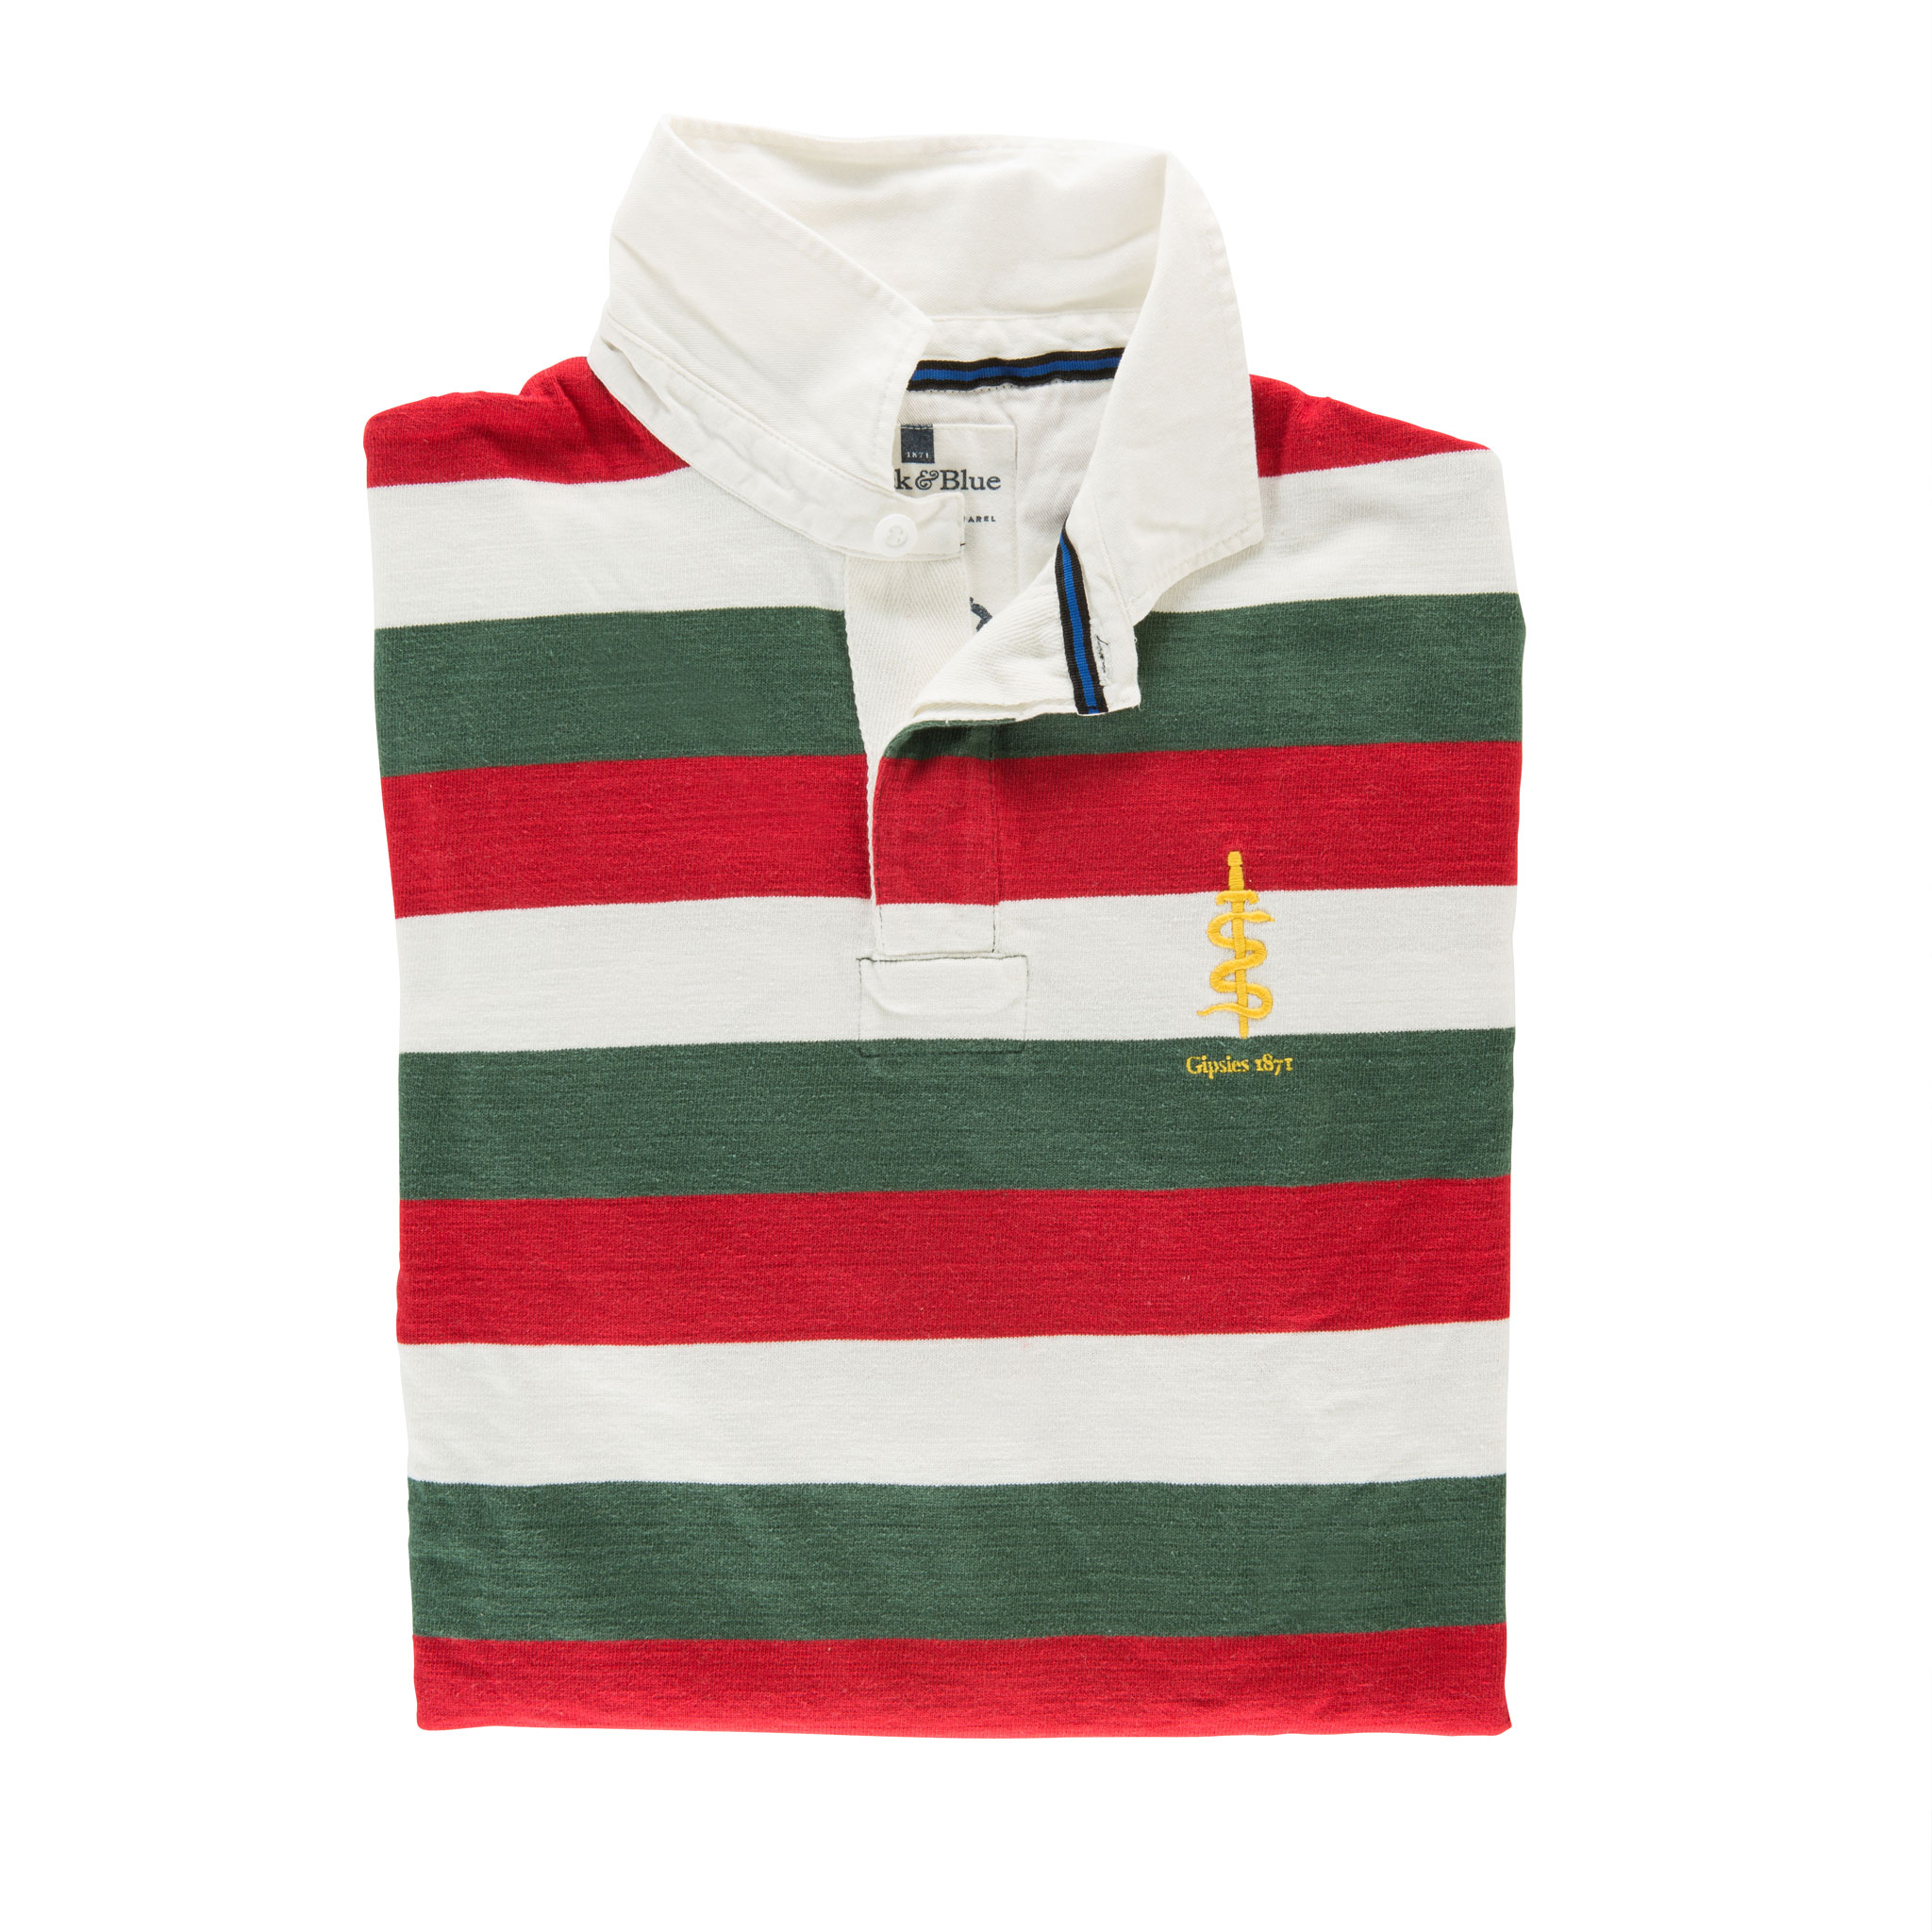 Gipsies 1871 Rugby Shirt - folded